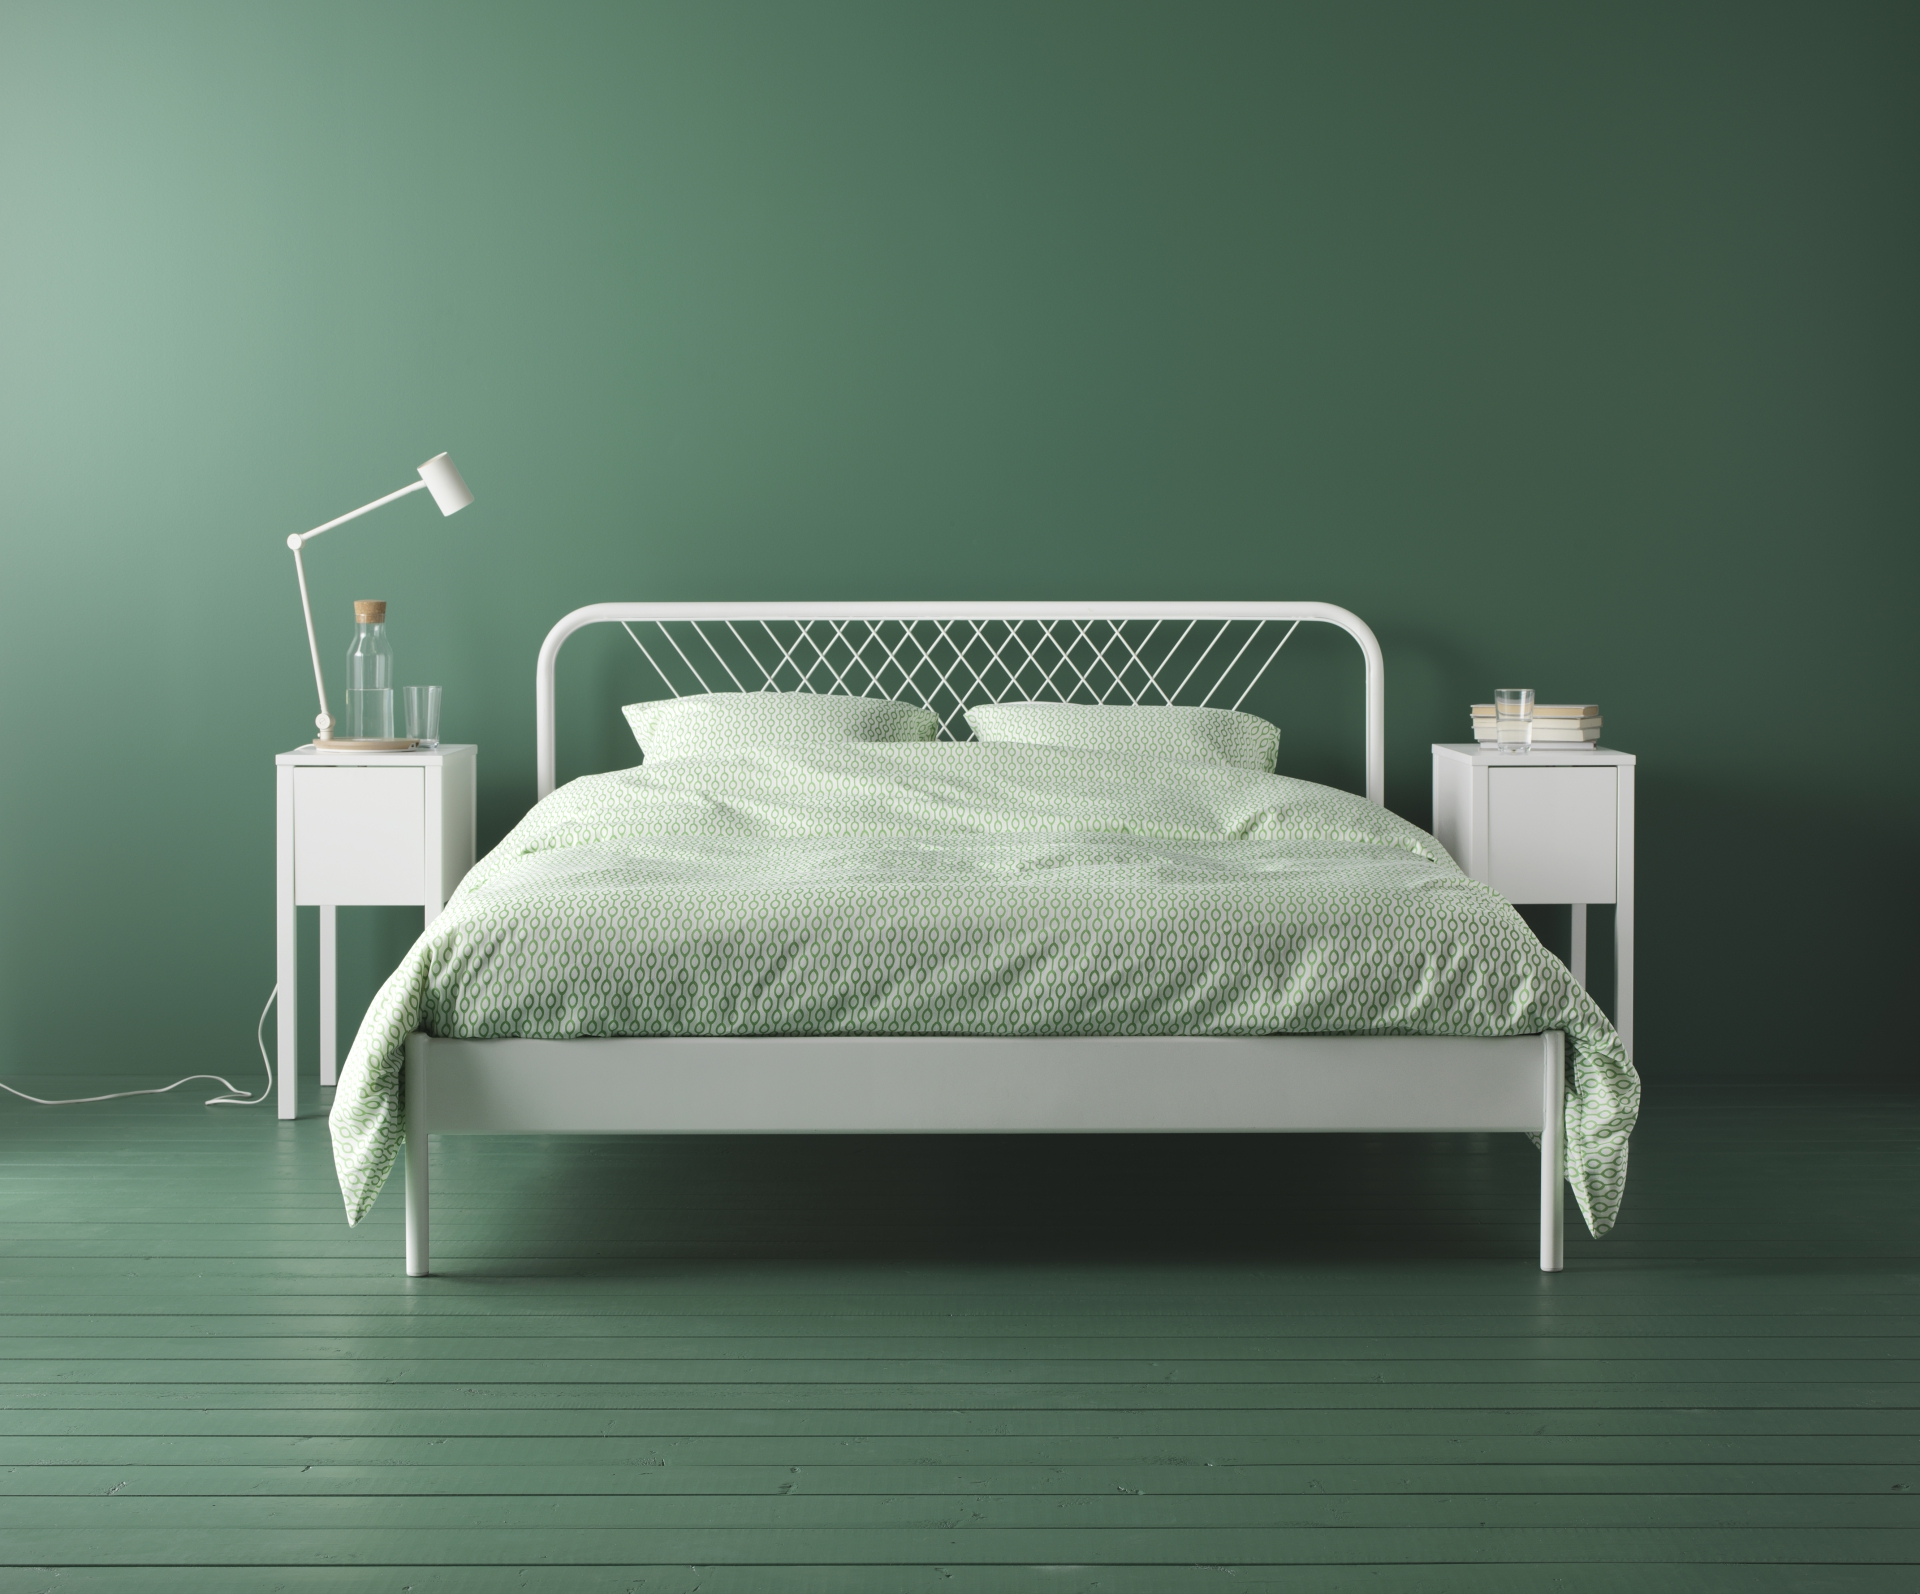 Ikea Bedroom Packages Ikea Nesttun Bed Frame Review Ikea Product Reviews